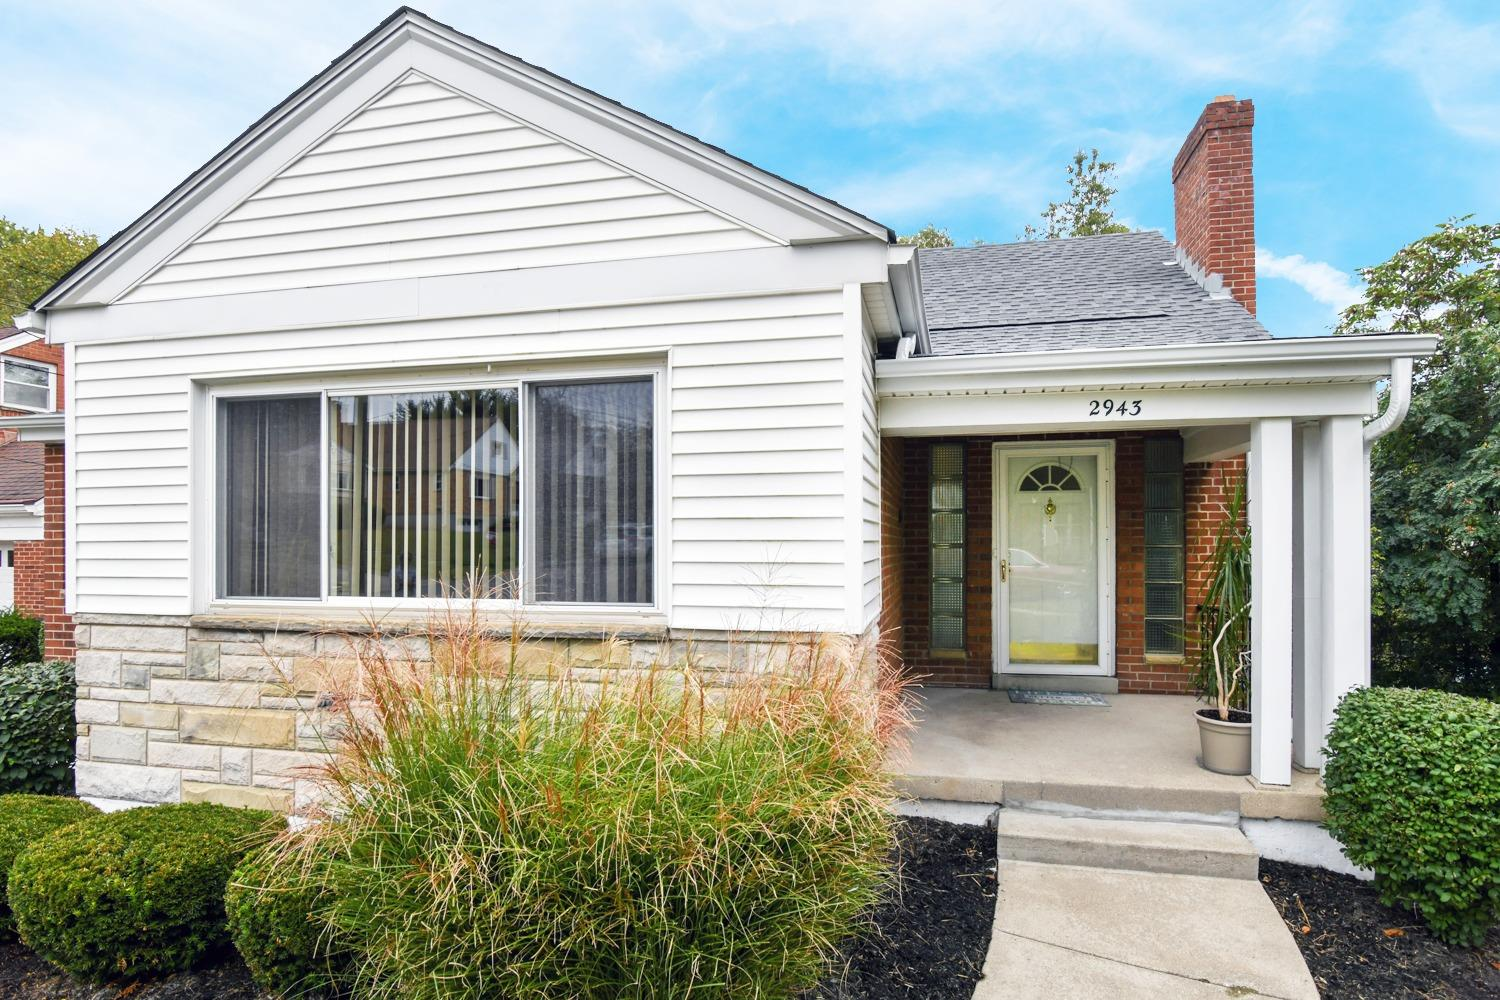 Photo 3 for 2943 Lawndale Ave Pleasant Ridge, OH 45212